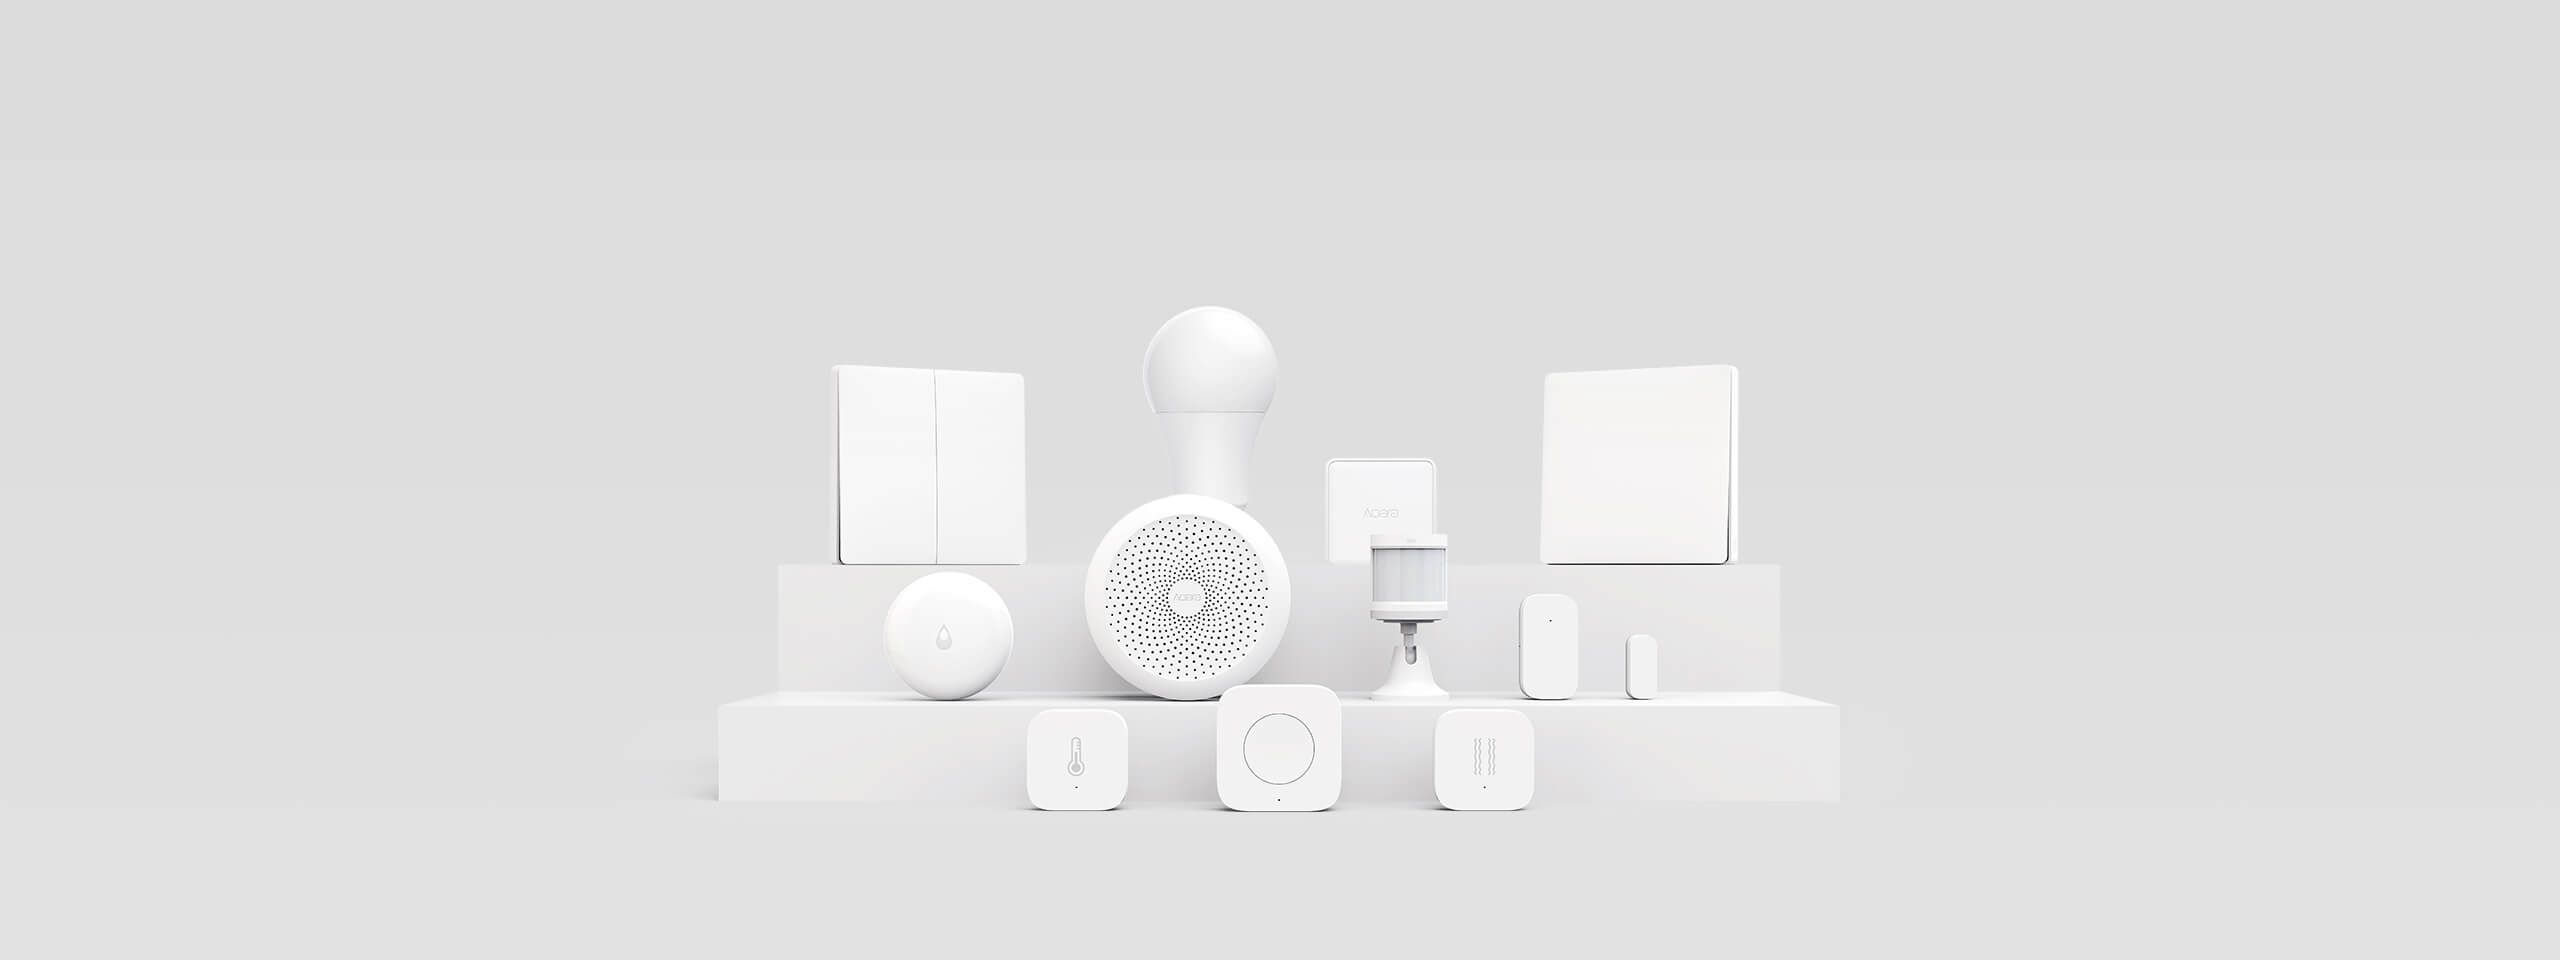 Aqara home automation system